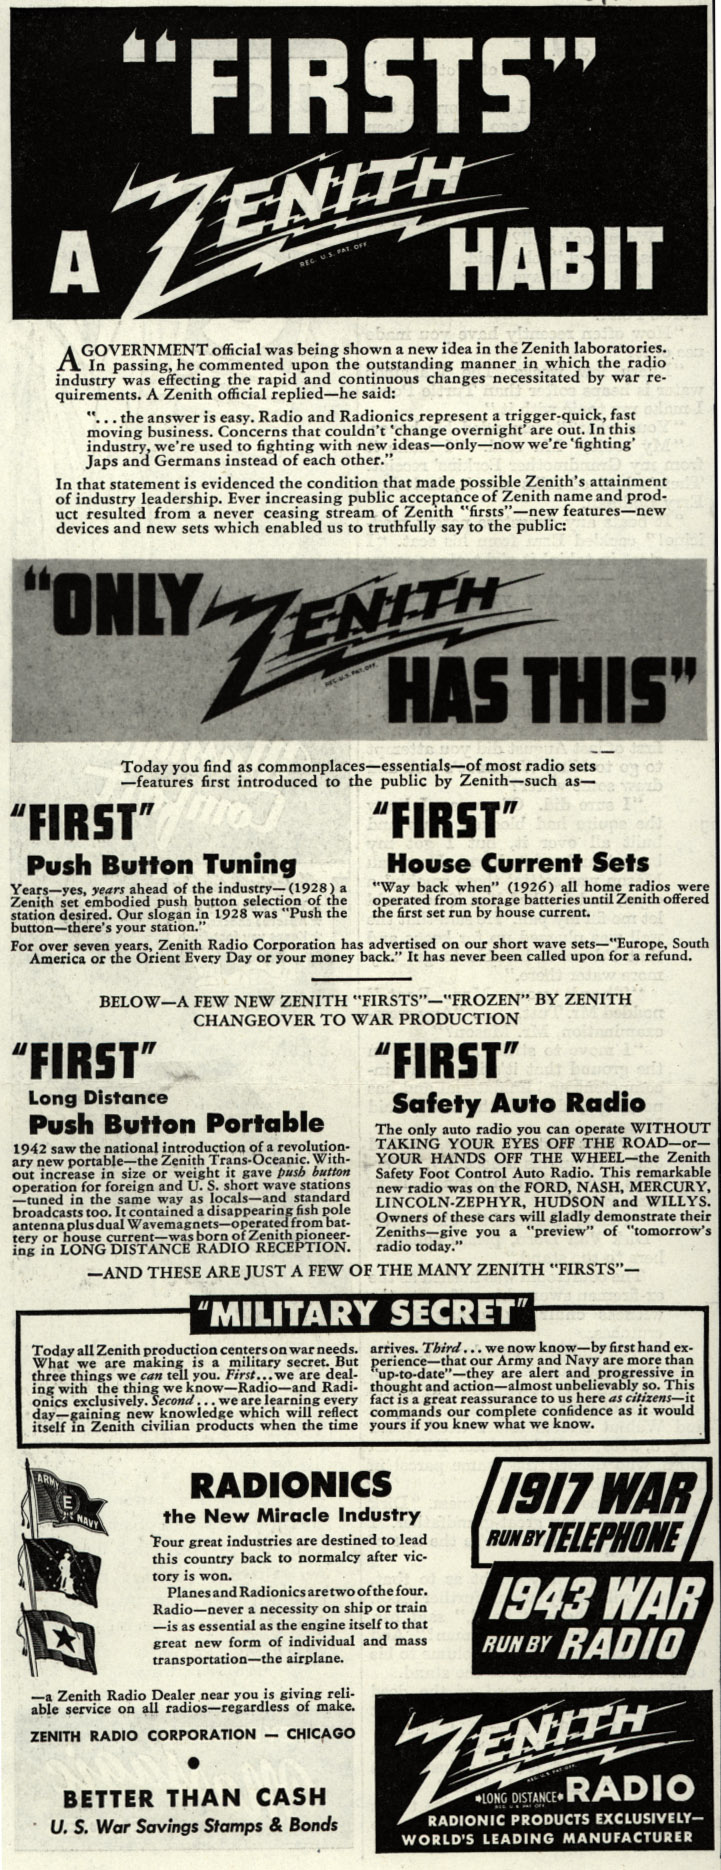 Firsts_A_Zenith_Habit